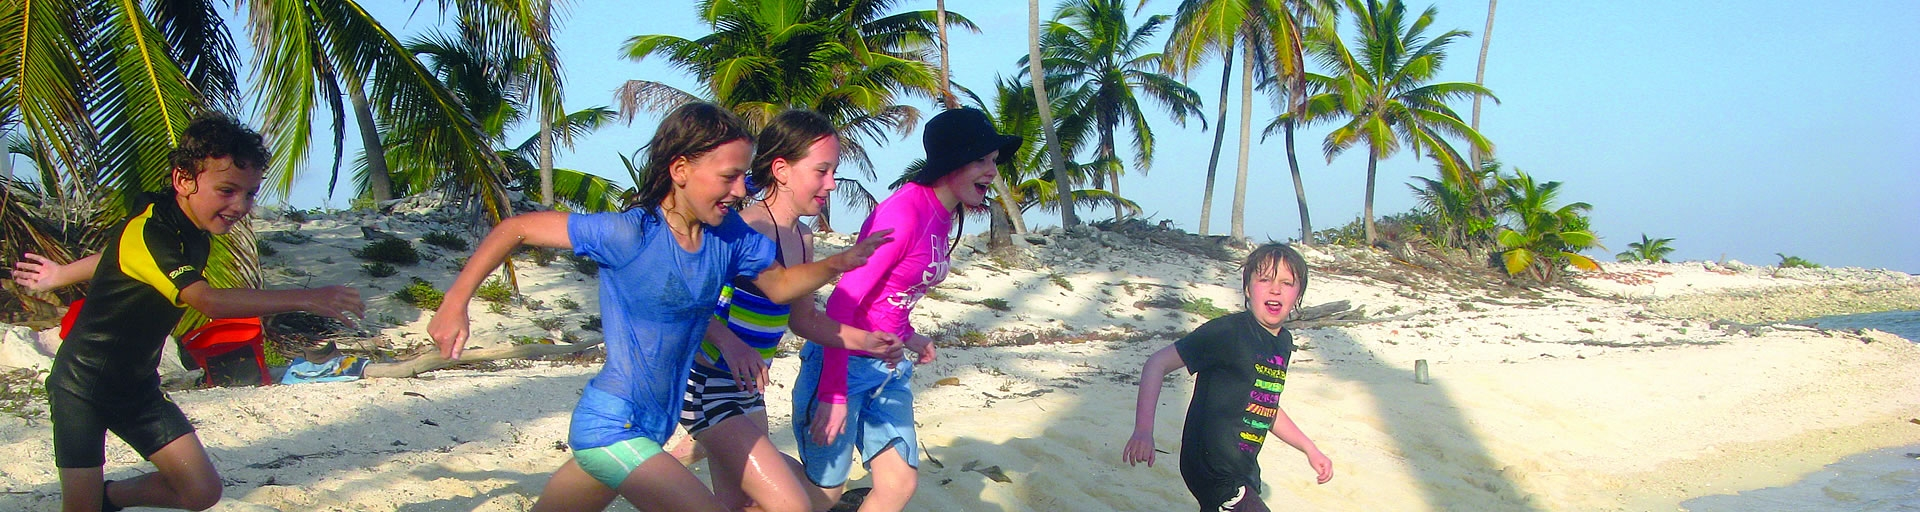 kids running on the beach in belize